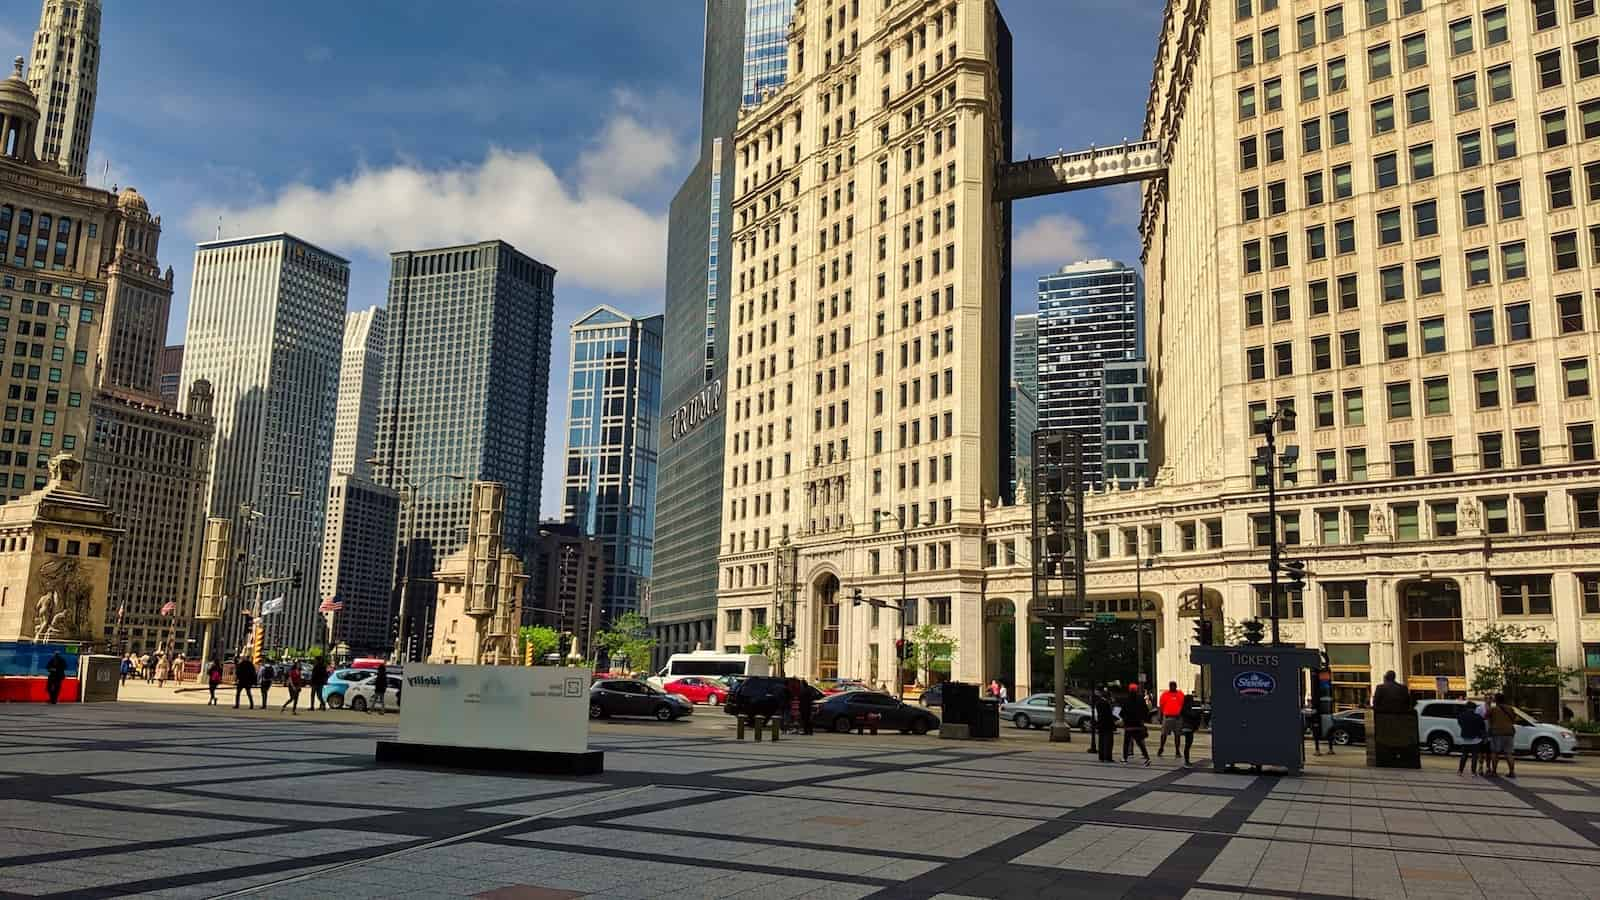 Chicago 2019 - Downtown Chicago Near the University of Chicago